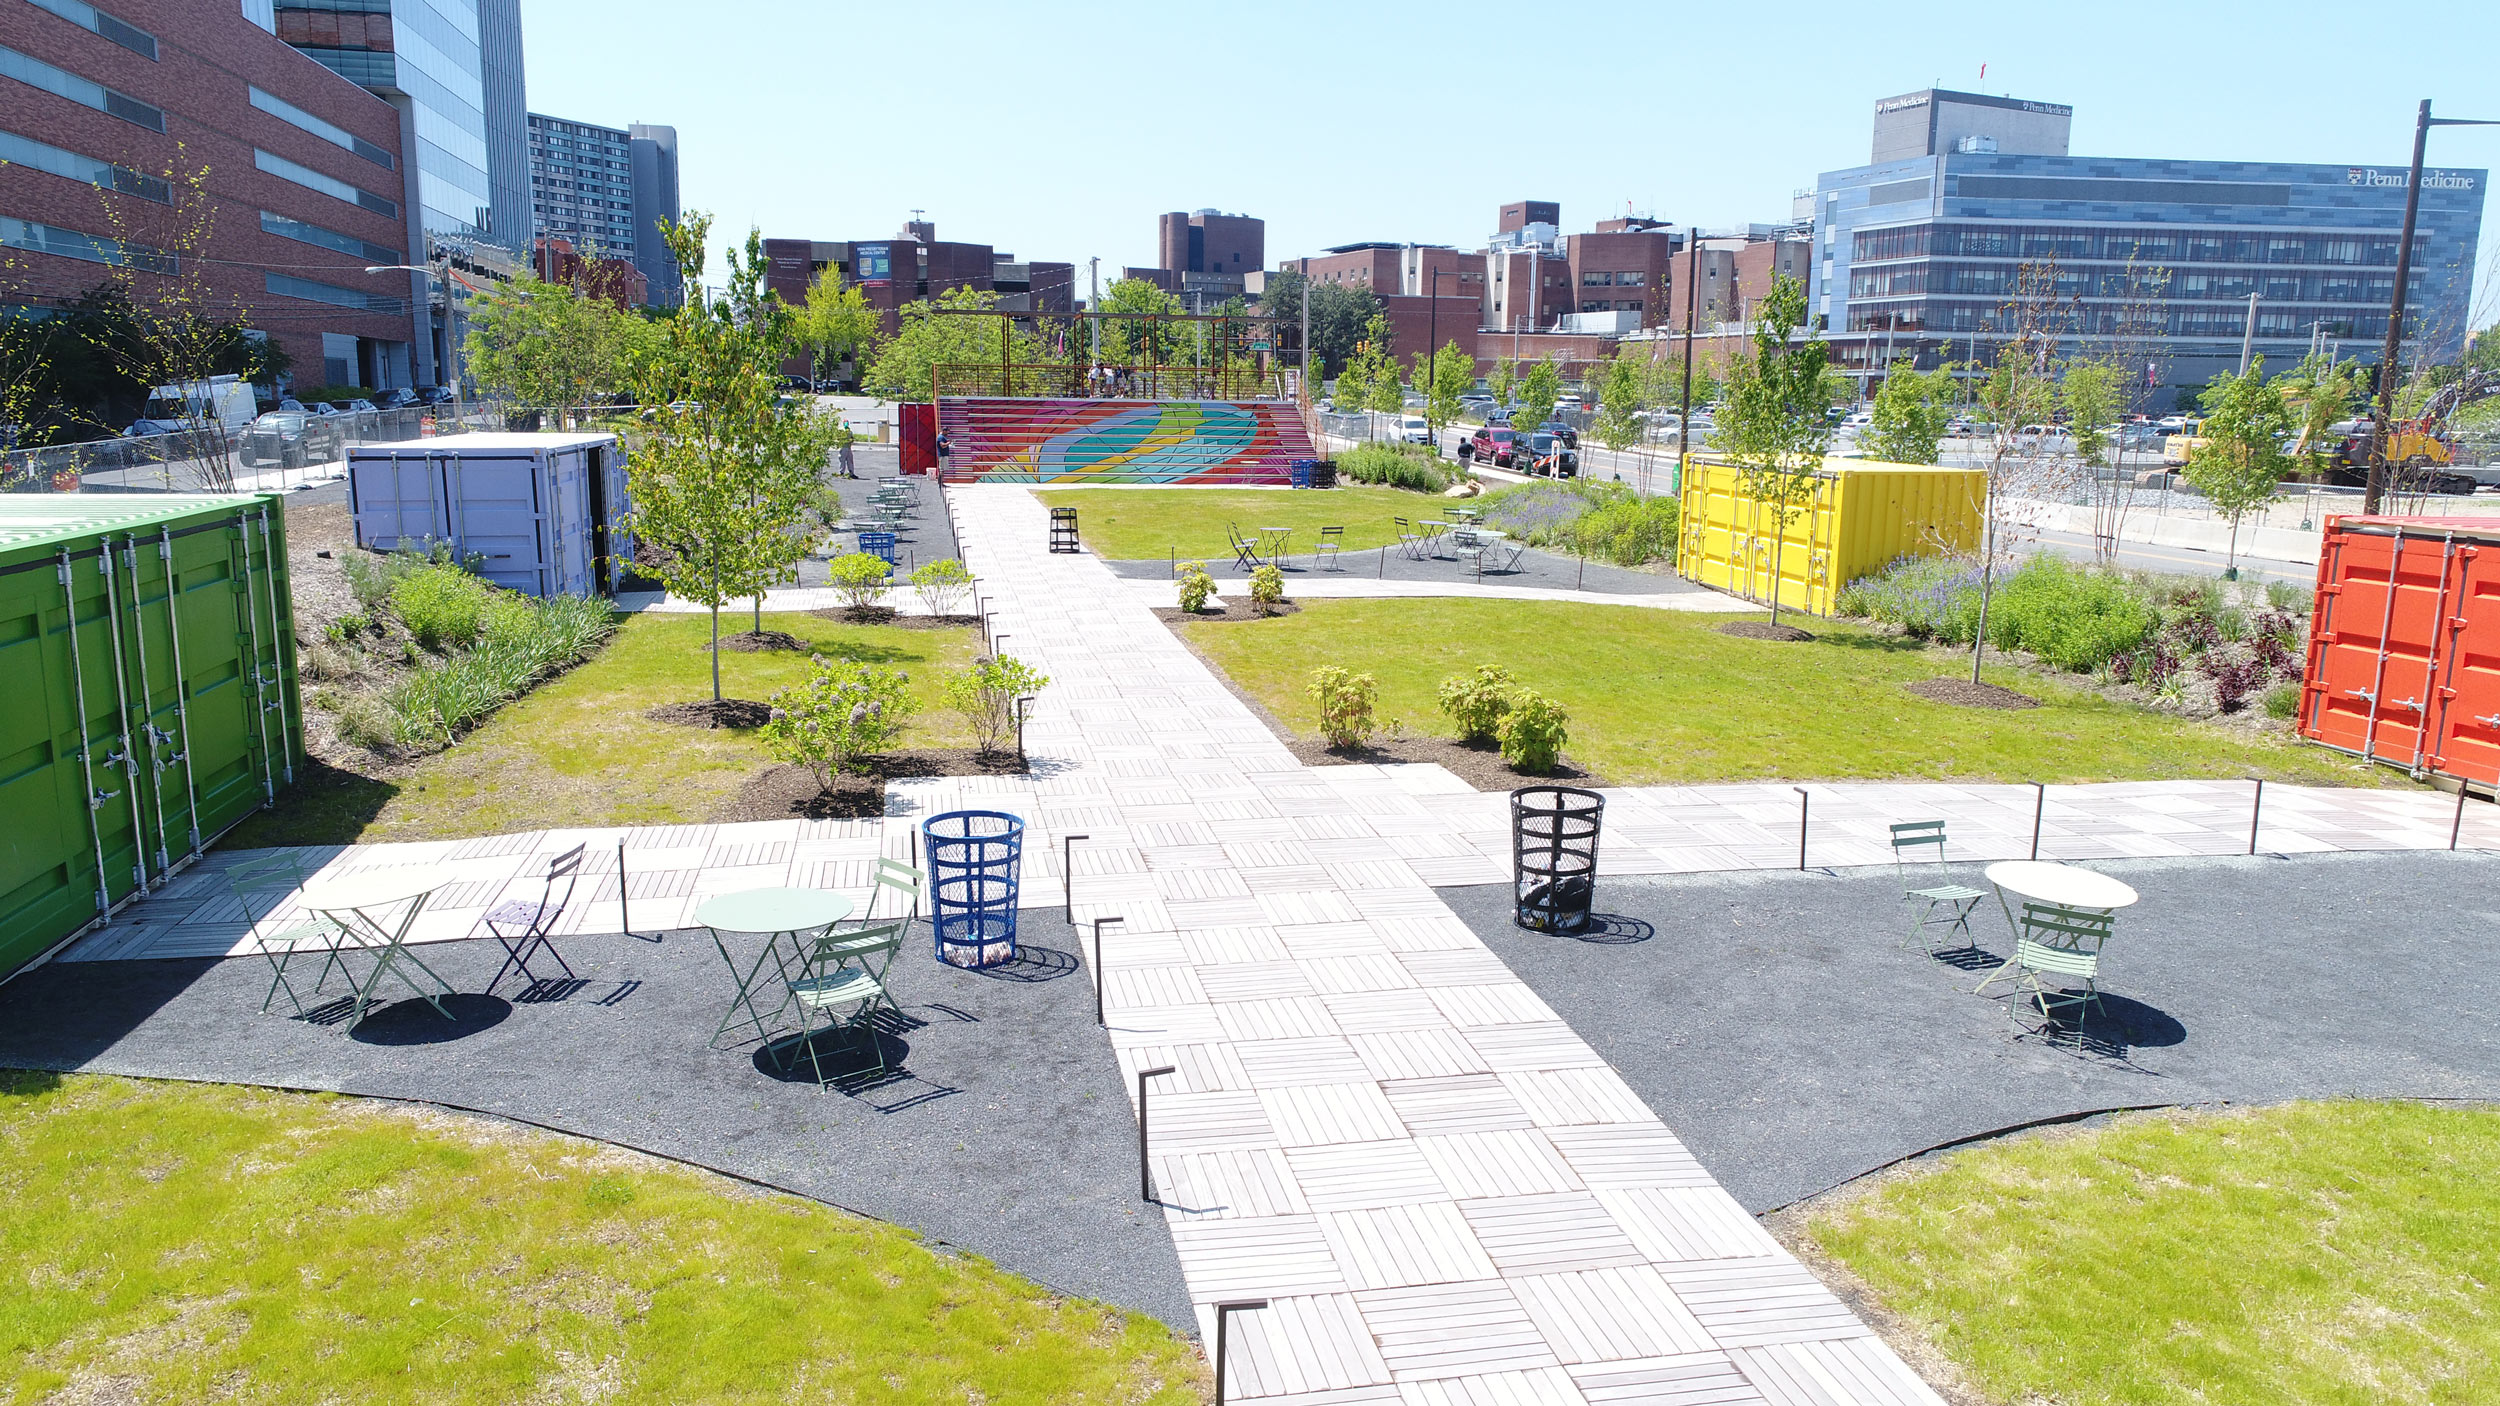 Green City works installed The Lawn at U city Square: including mature tree and shrub species, perennials plantings built on earthen berms, four decomposed granite, permeable seating areas, a linear Ipe boardwalk, and path lighting.